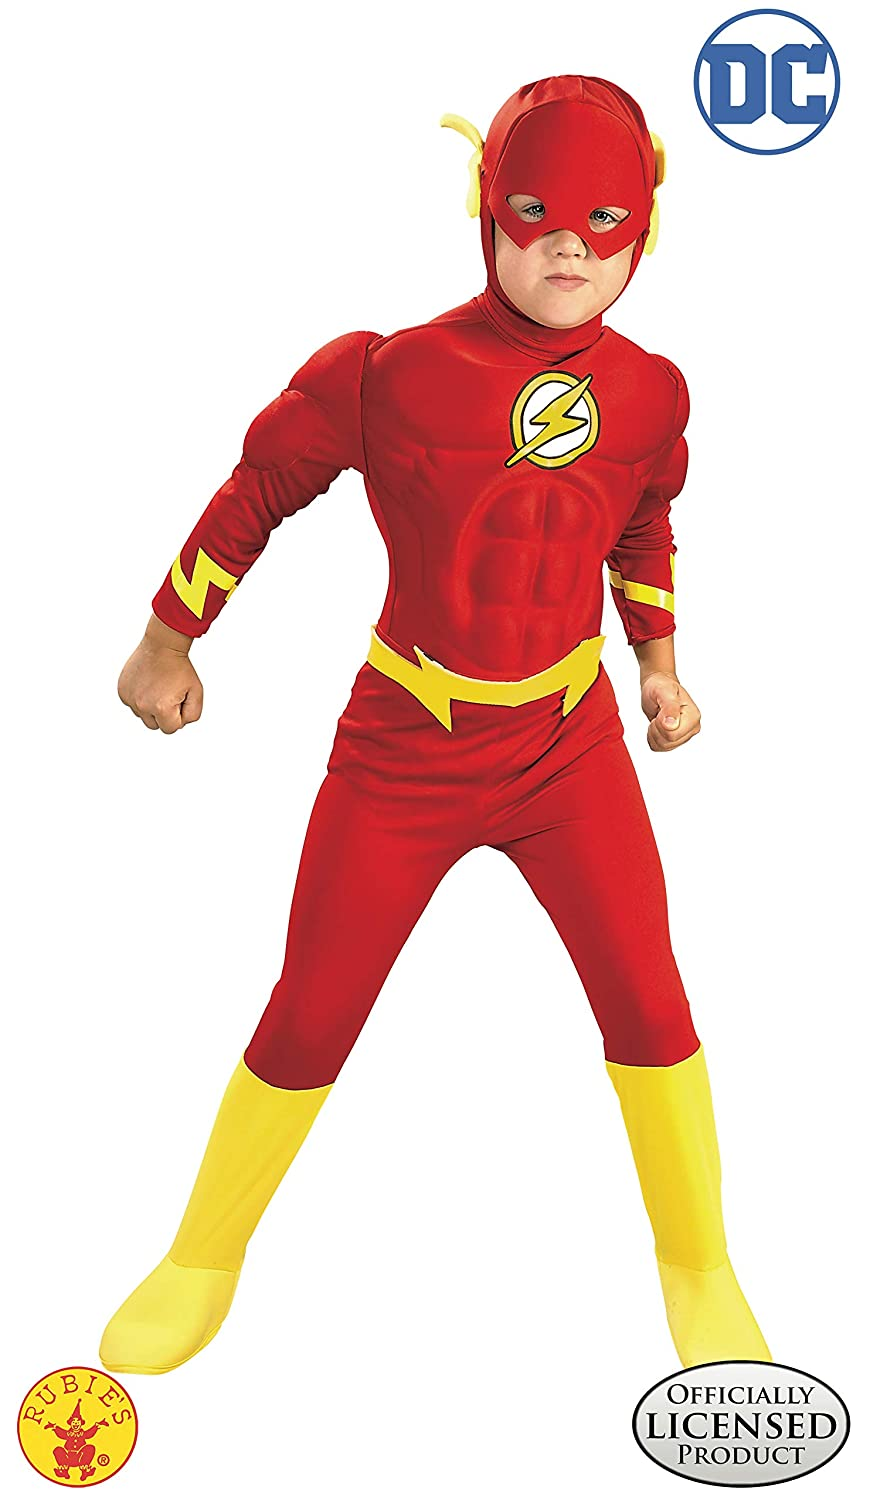 Rubies DC Comics Deluxe Muscle Chest The Flash Childs Costume  Small